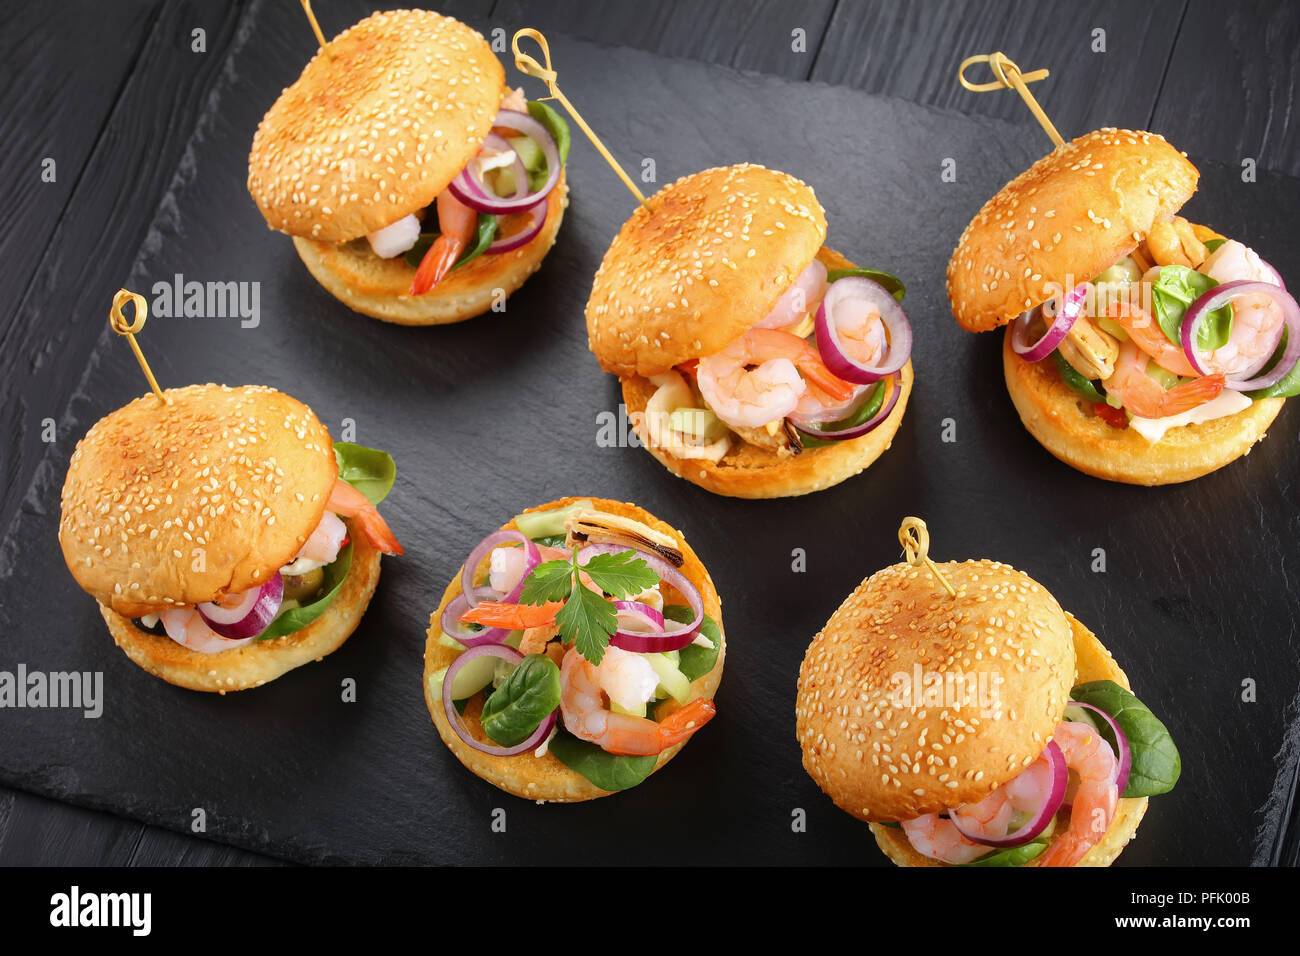 delicious small burgers pinned with bamboo skewers or pinchos with shrimps, calamari, mussels, red onion rings and finely chopped cucumber, spain cuis - Stock Image